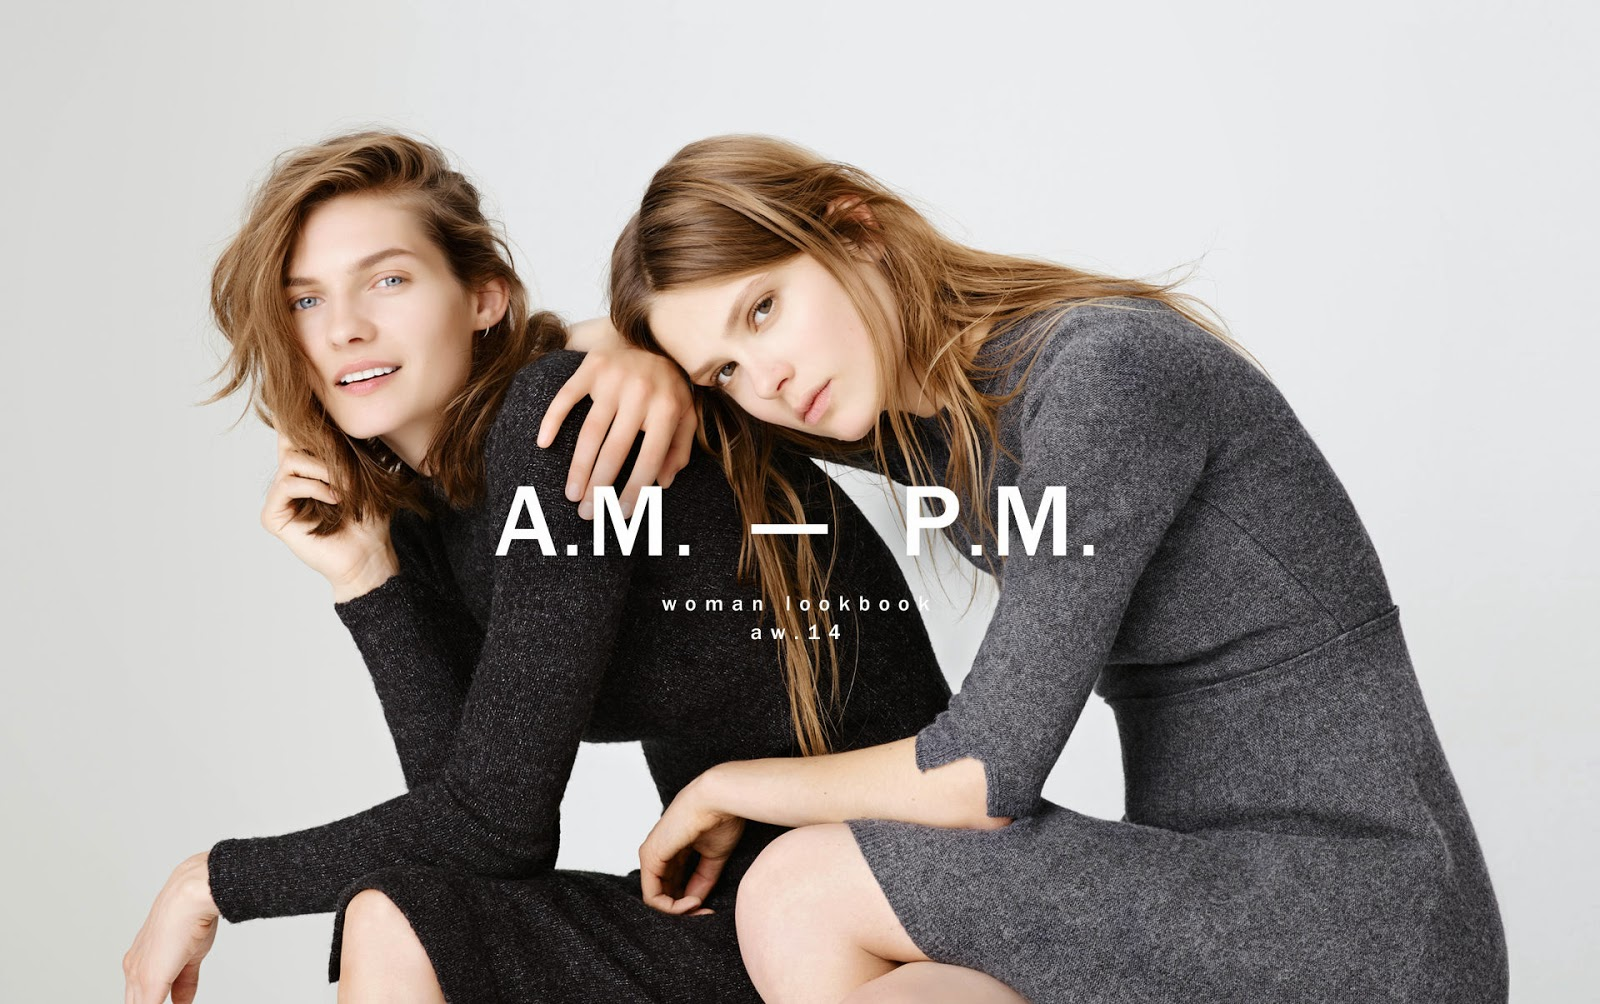 Zara November Lookbook Moda Fashion Trends Tendencias Otoño 2014 Imagen